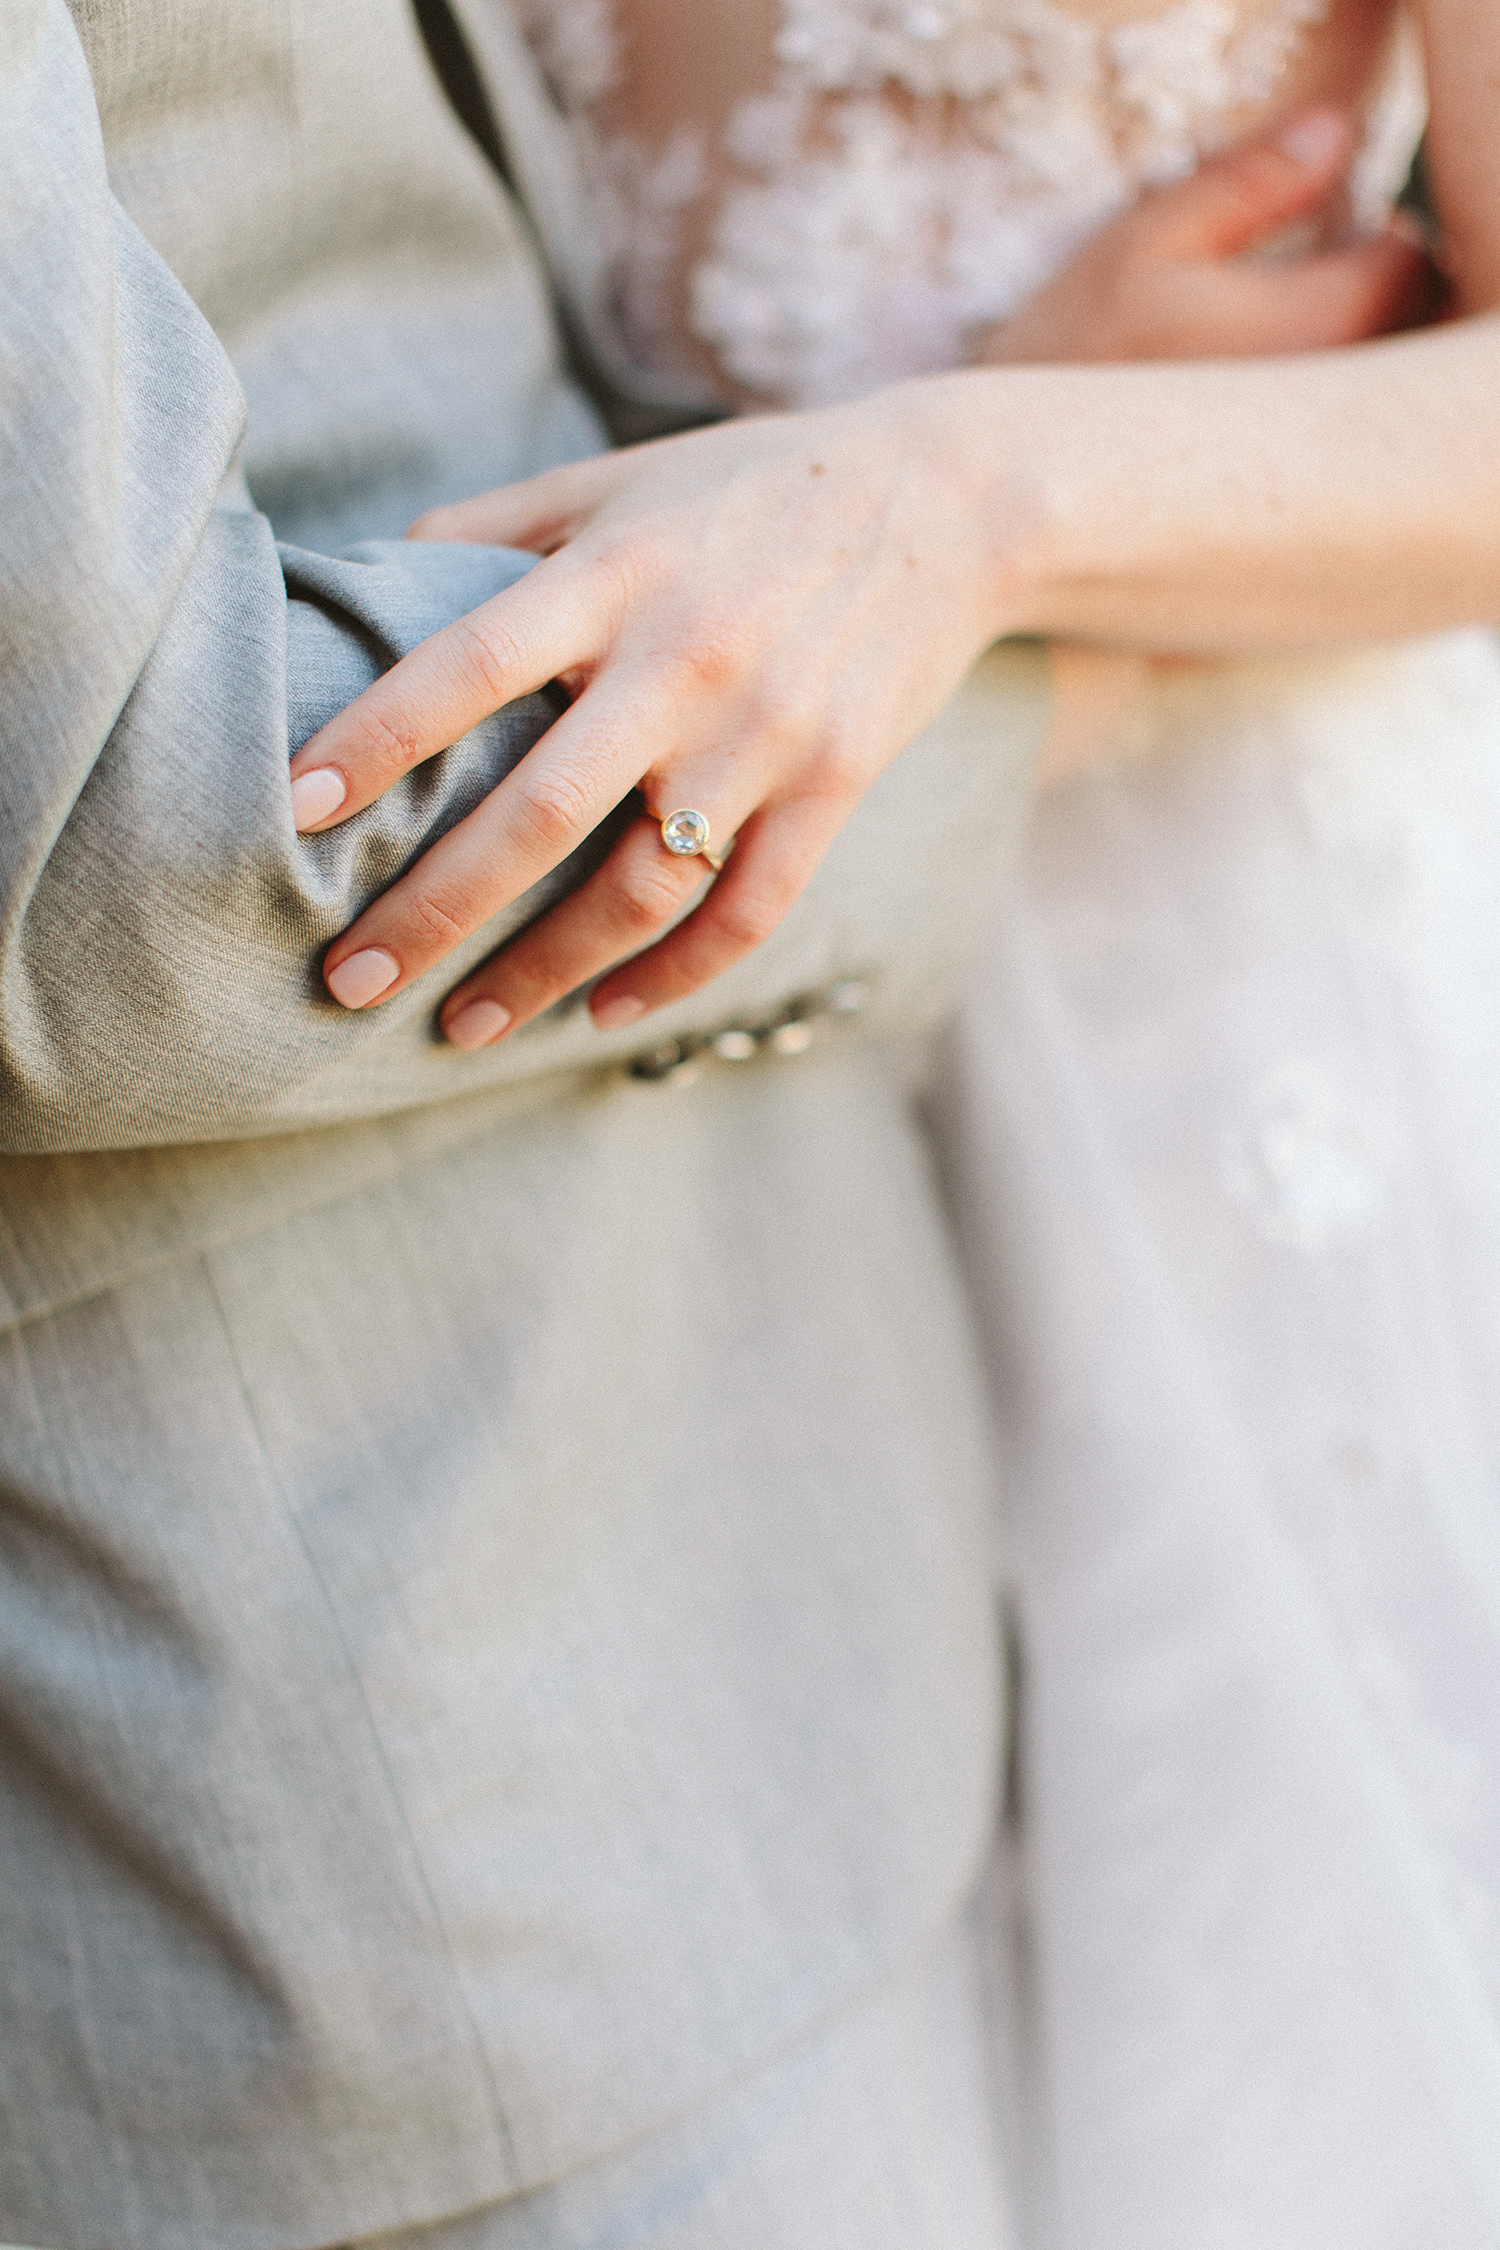 5 Expert-Approved Tips for Snapping the Prettiest Photos of Your Engagement Ring